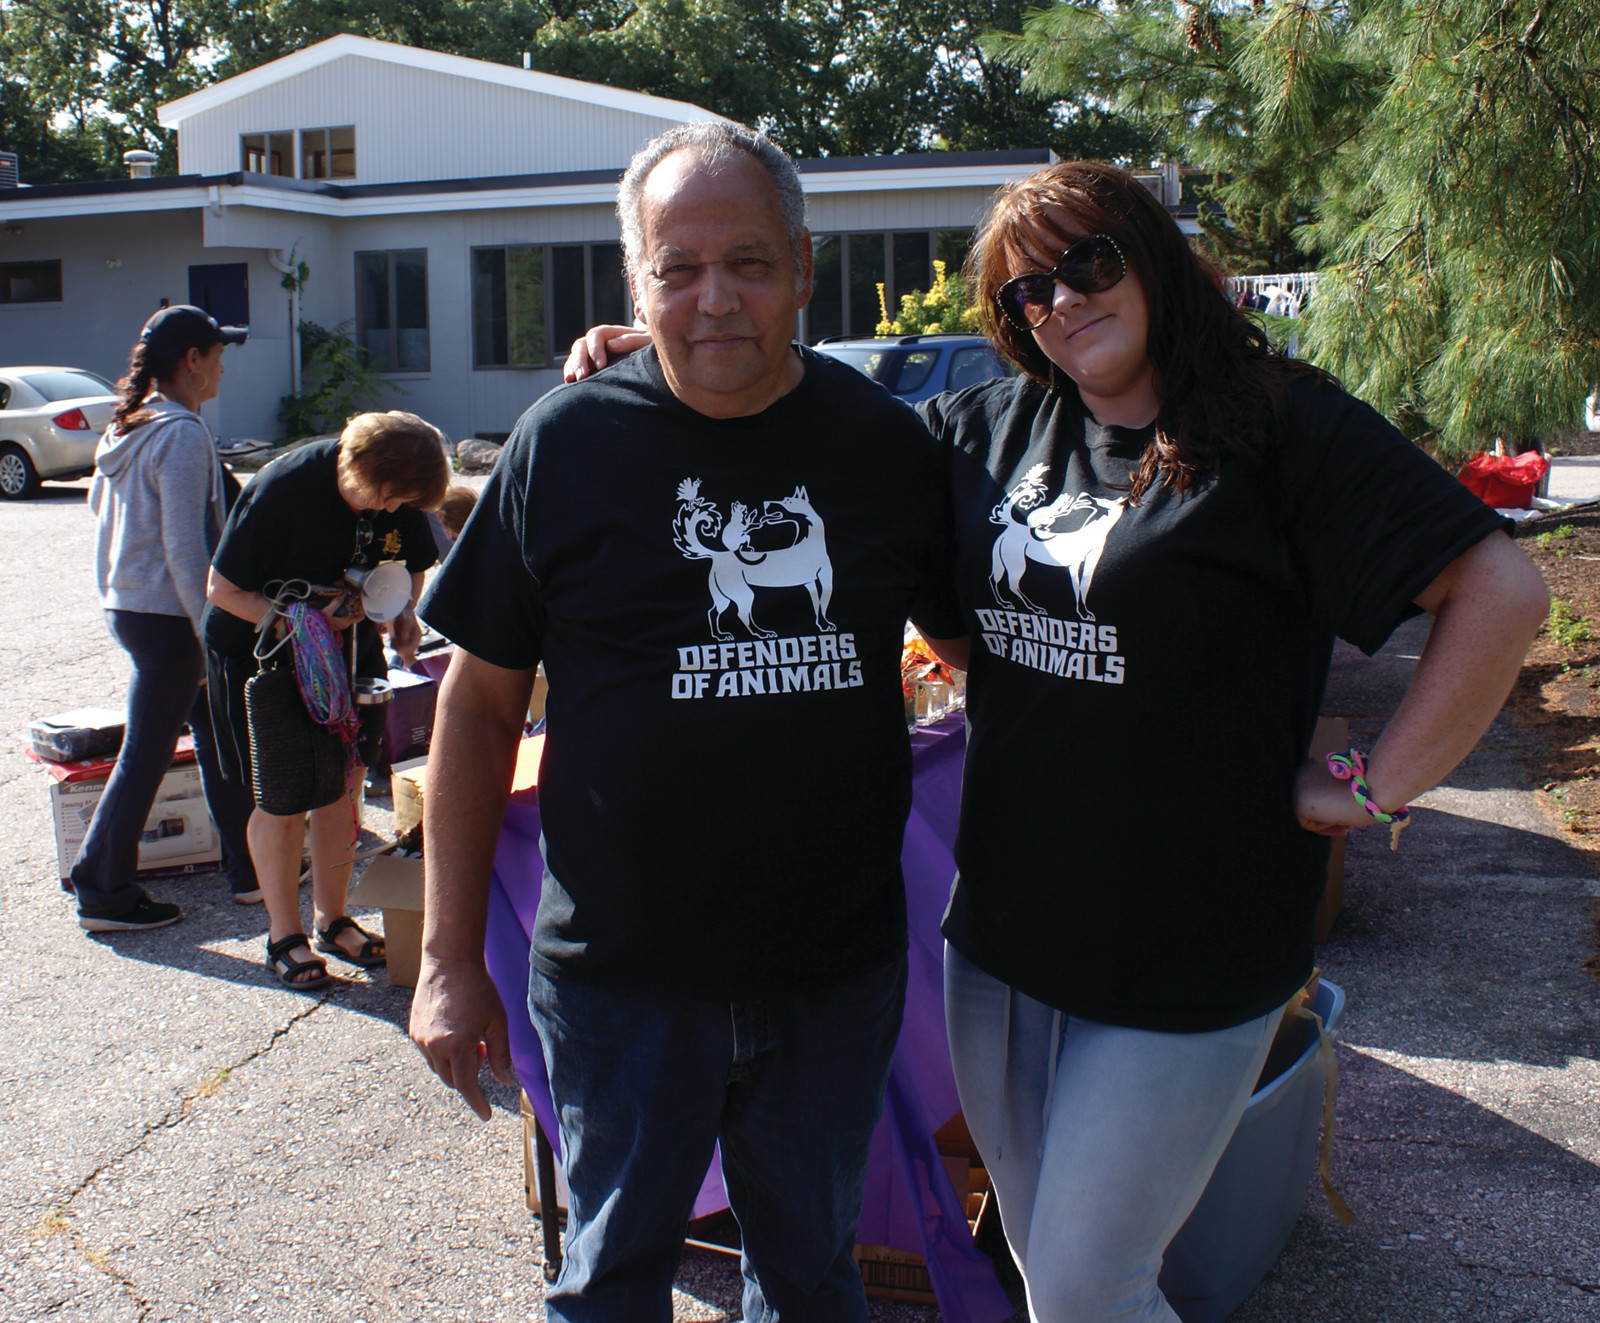 WORKING TOGETHER: Pictured is Dennis Tabella, Director of Defenders of Animals and Tonya Keegan, Kennel Manager at Warwick Animal Hospital who worked together for a successful fundraiser for Defenders of Animals.